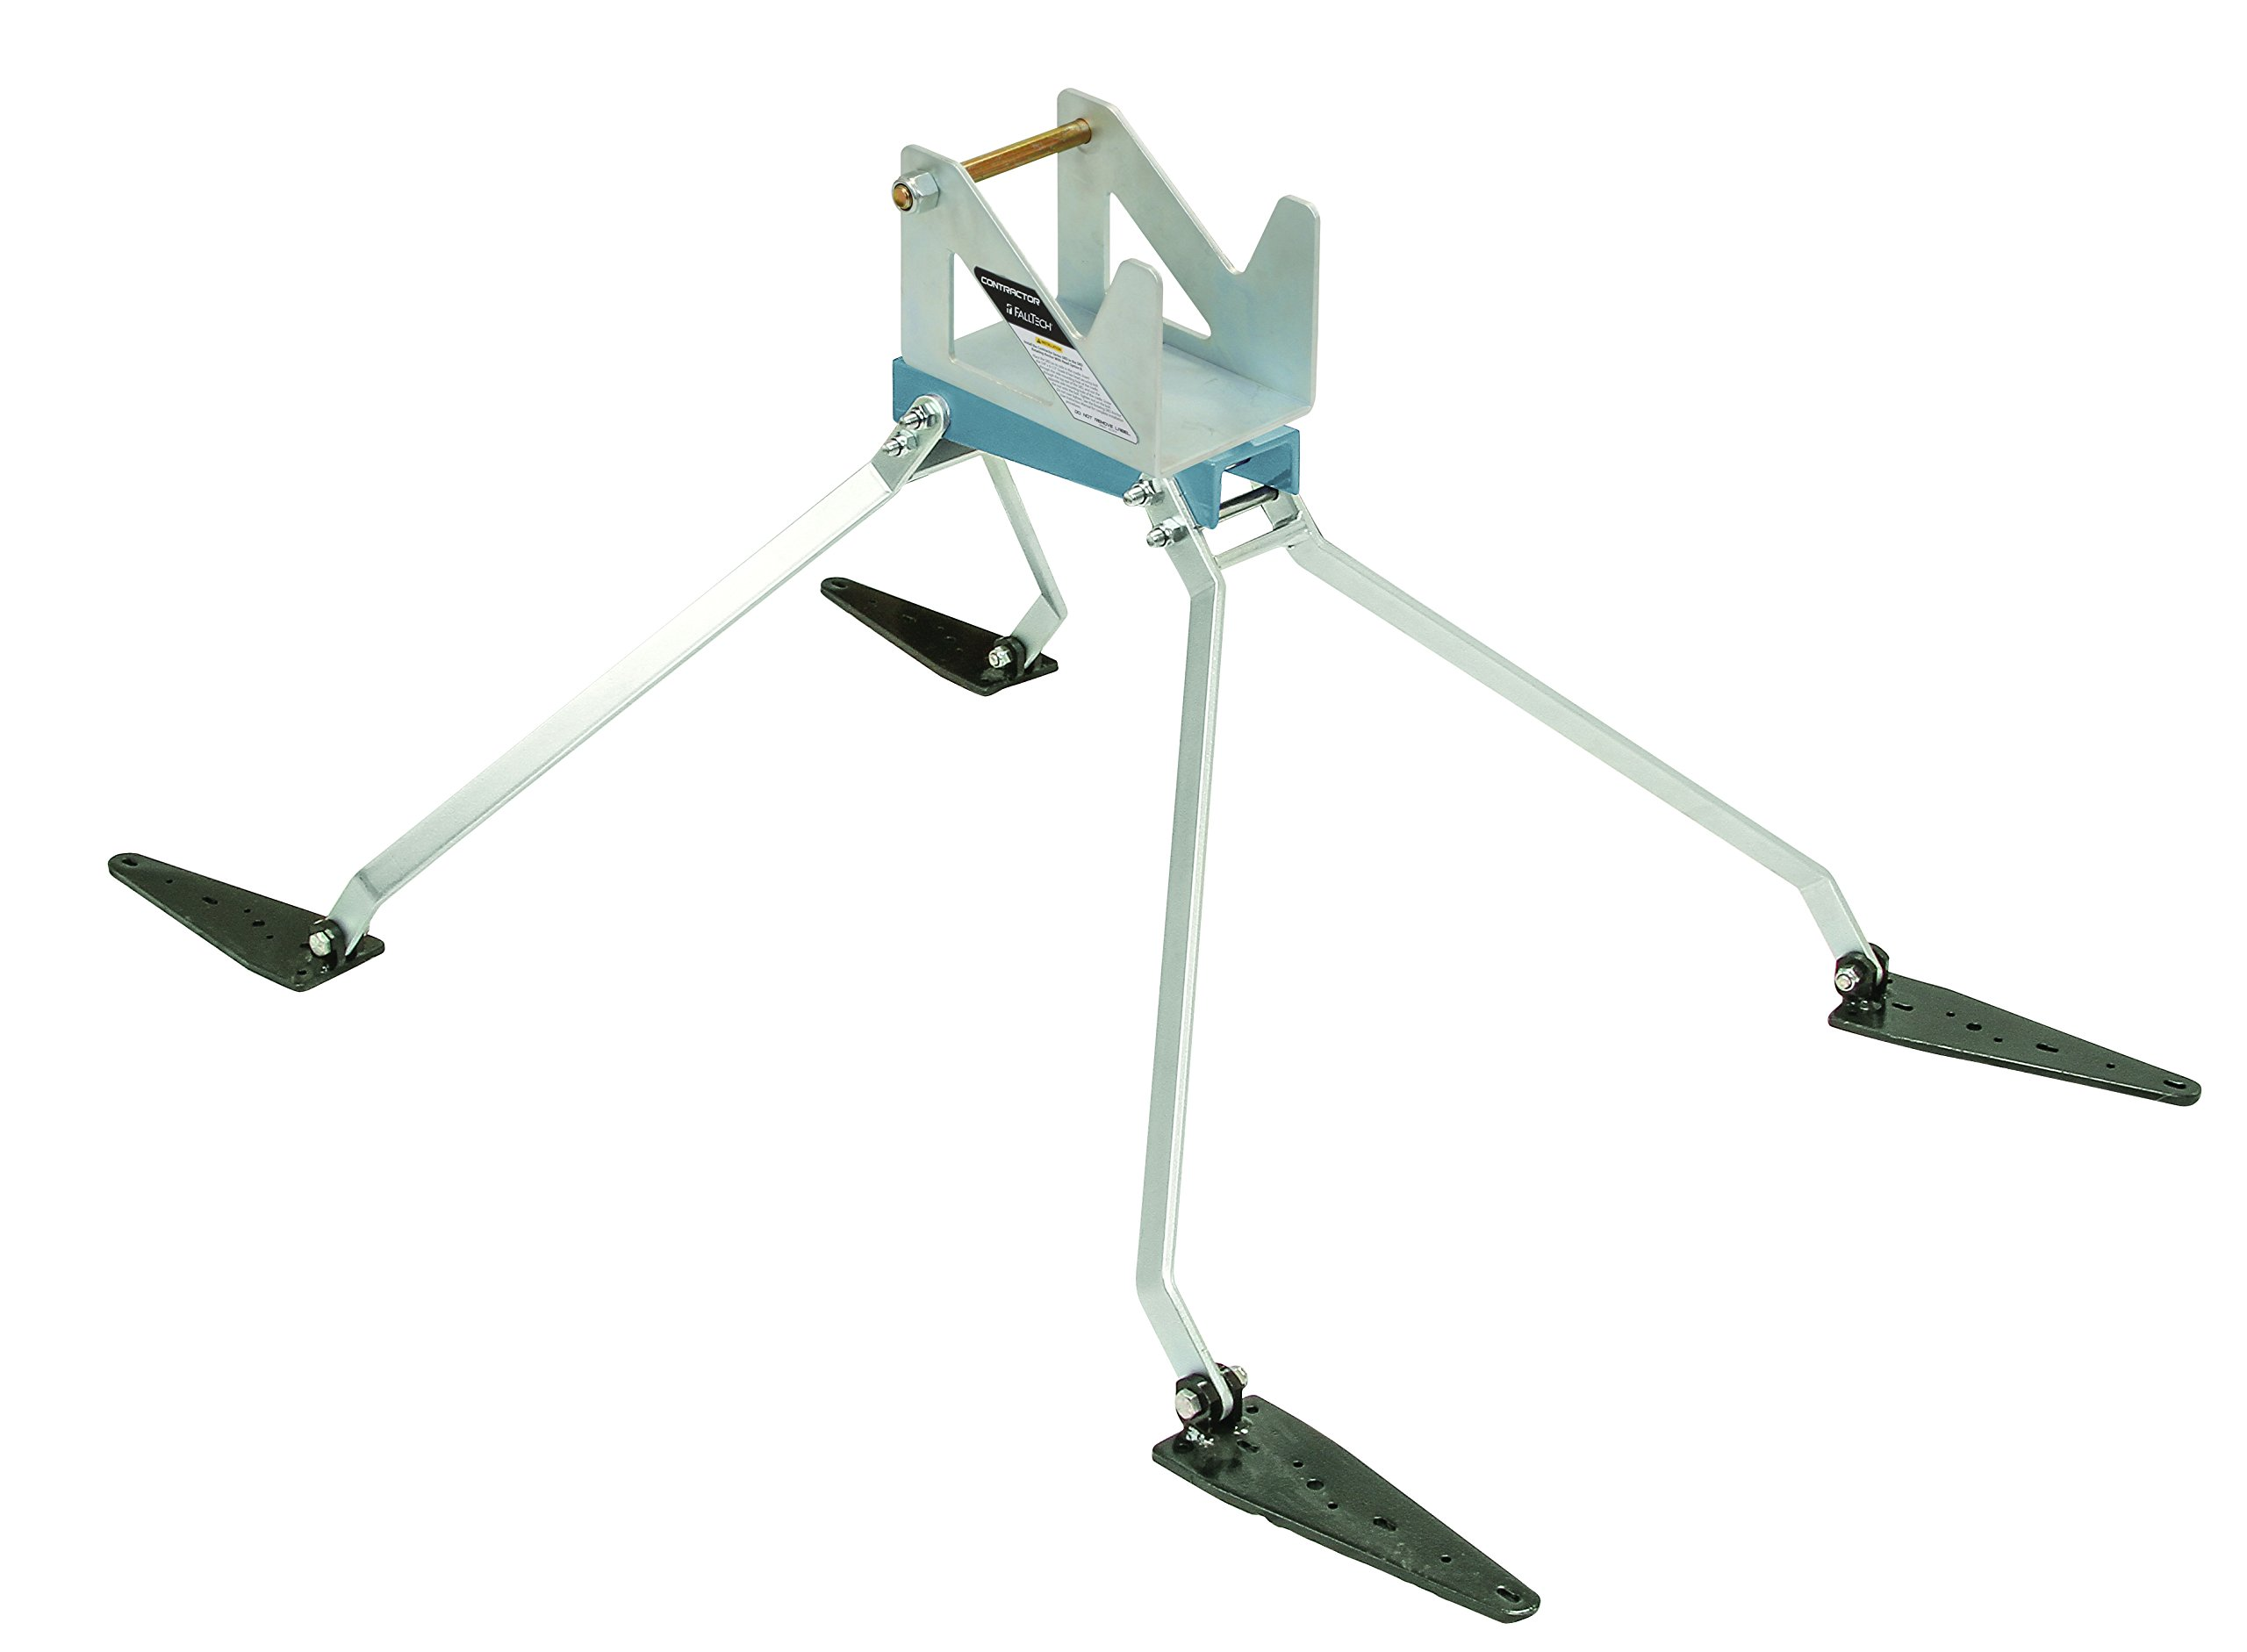 FallTech 7395E Contractor Rotating Elevated SRD Anchor - Rotating SRD Cradle, Adjustment Pads and Knobs, Zinc-plated Steel Legs, Includes Fasteners, Natural